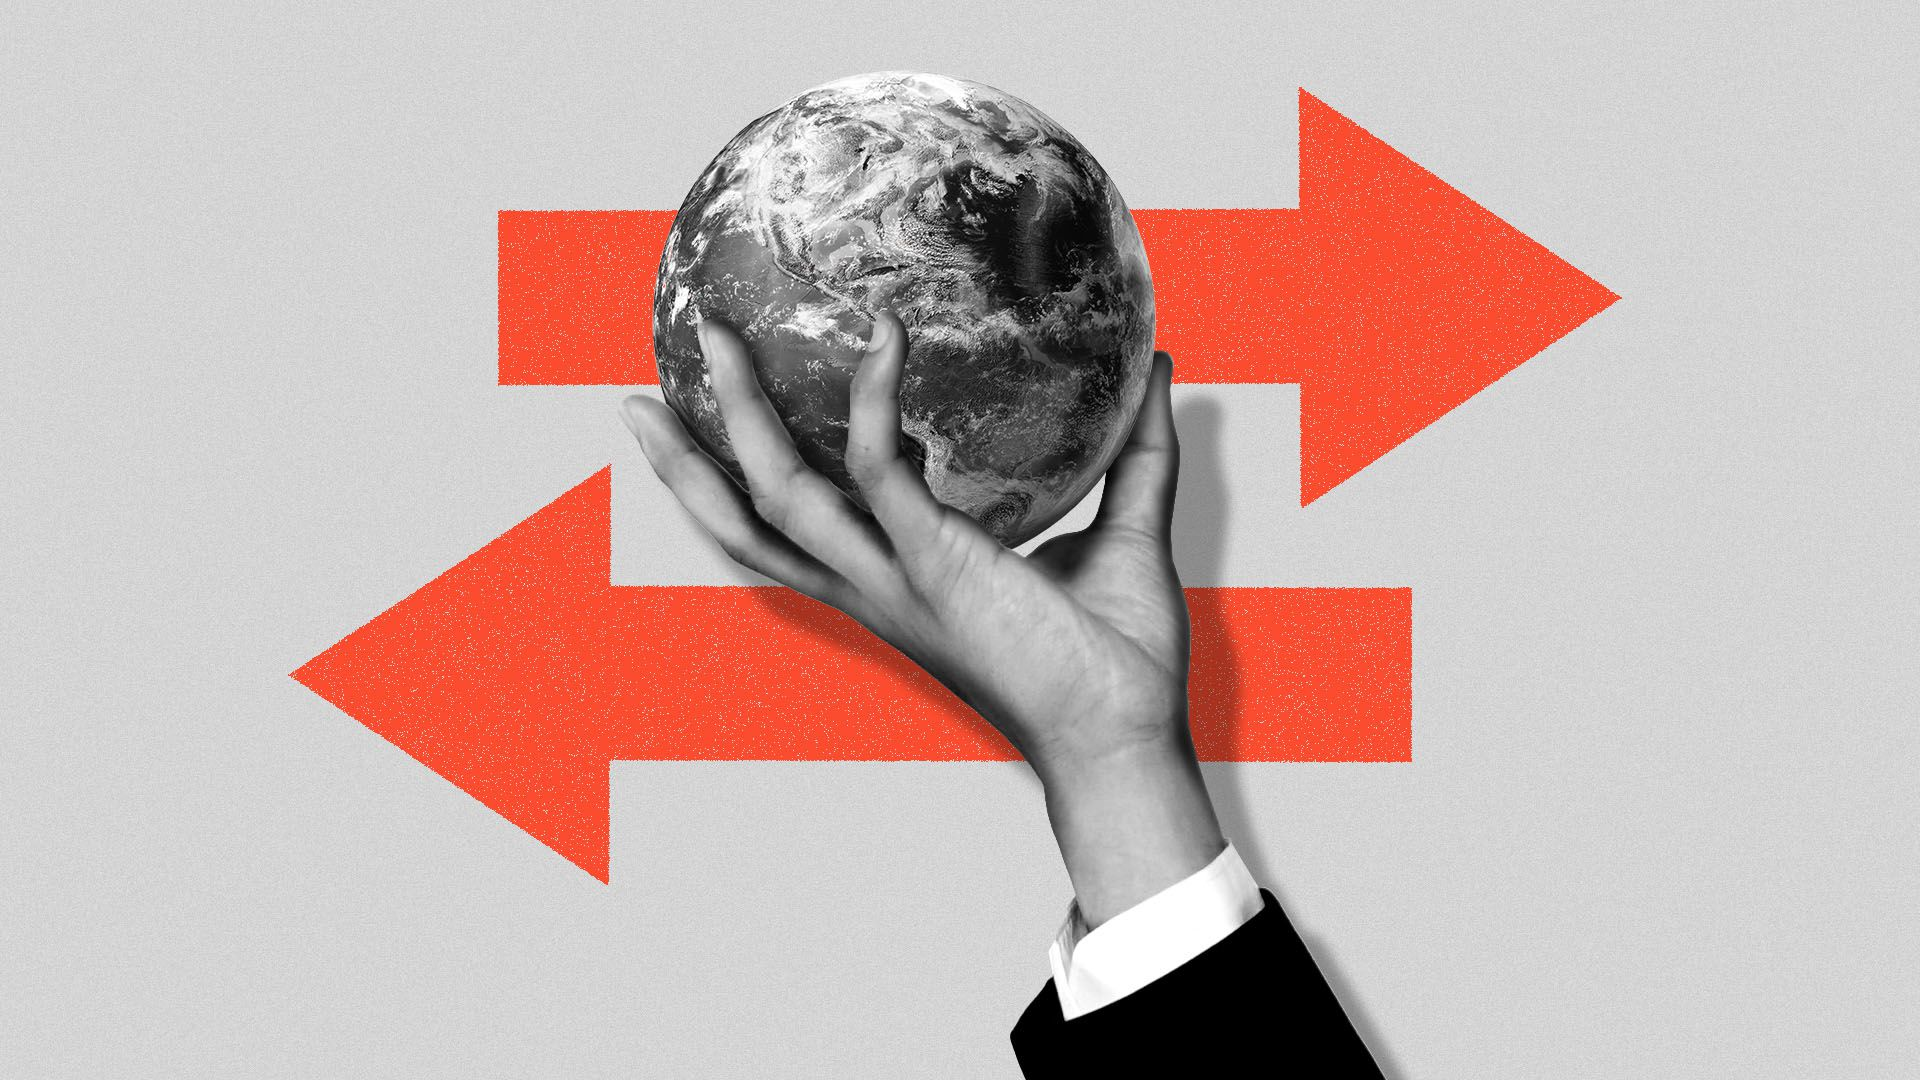 Illustration of a hand holding the globe, with two arrows going in different directions